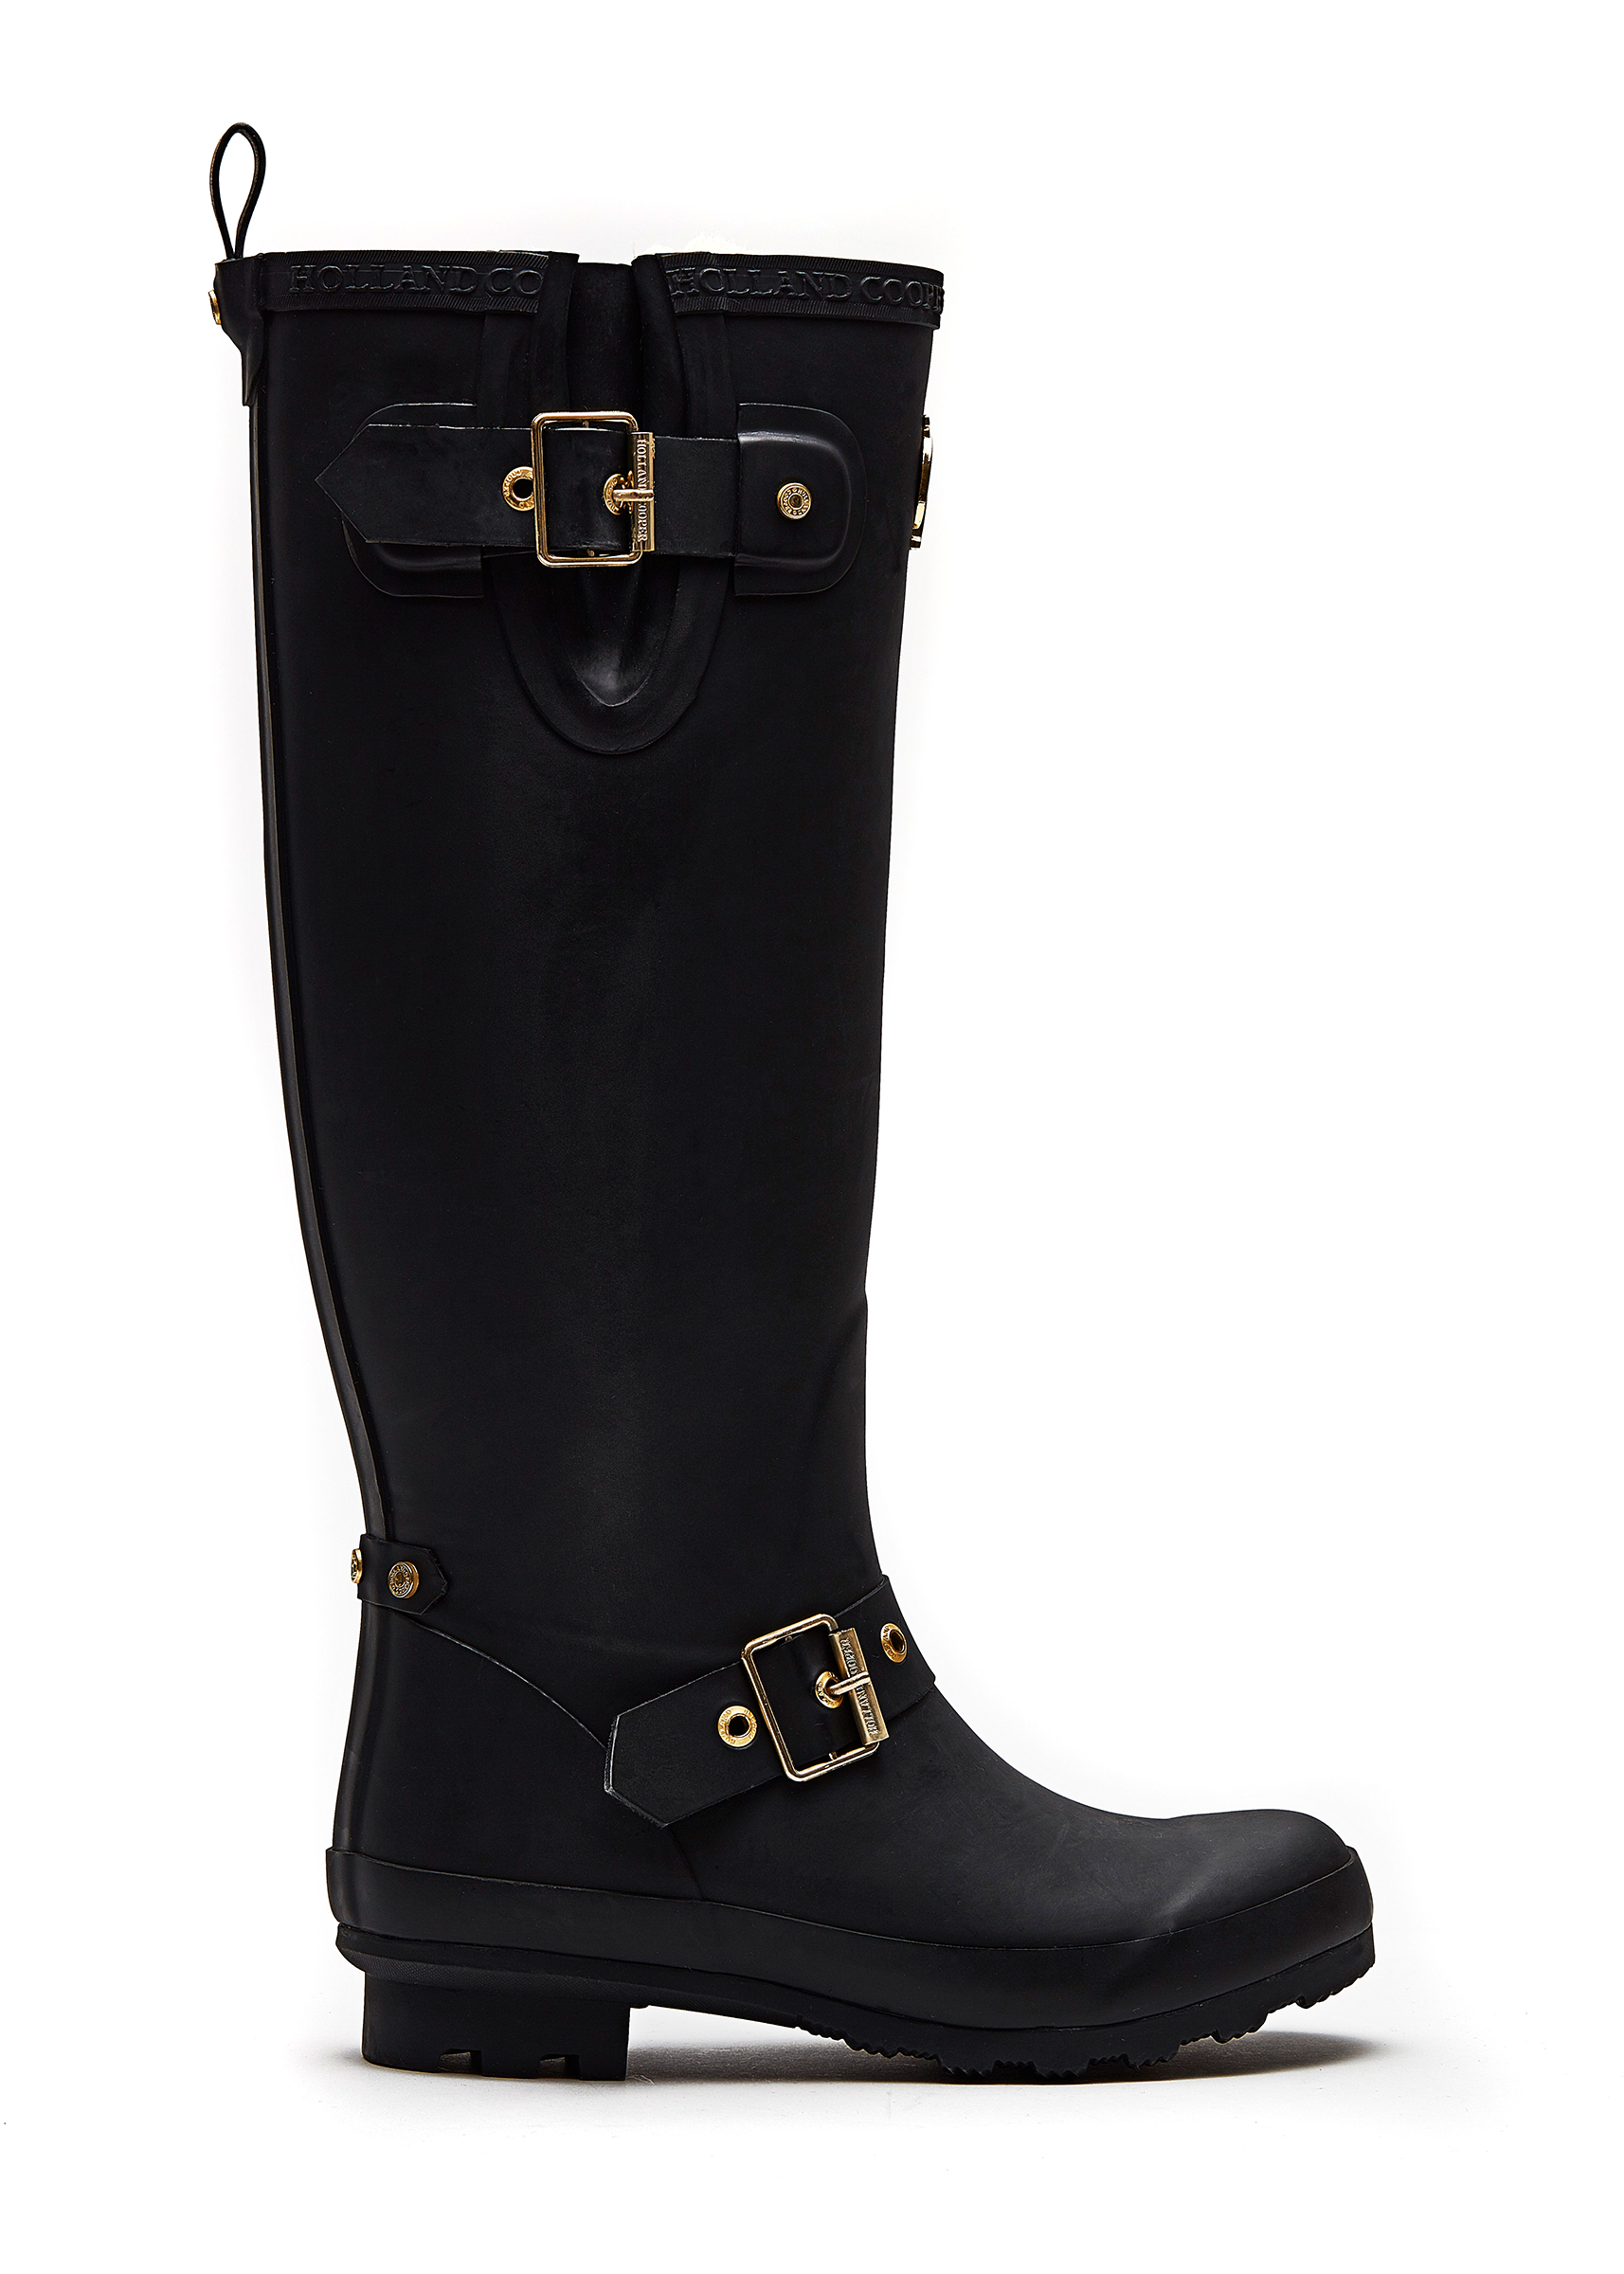 HC Wellies Matte Black